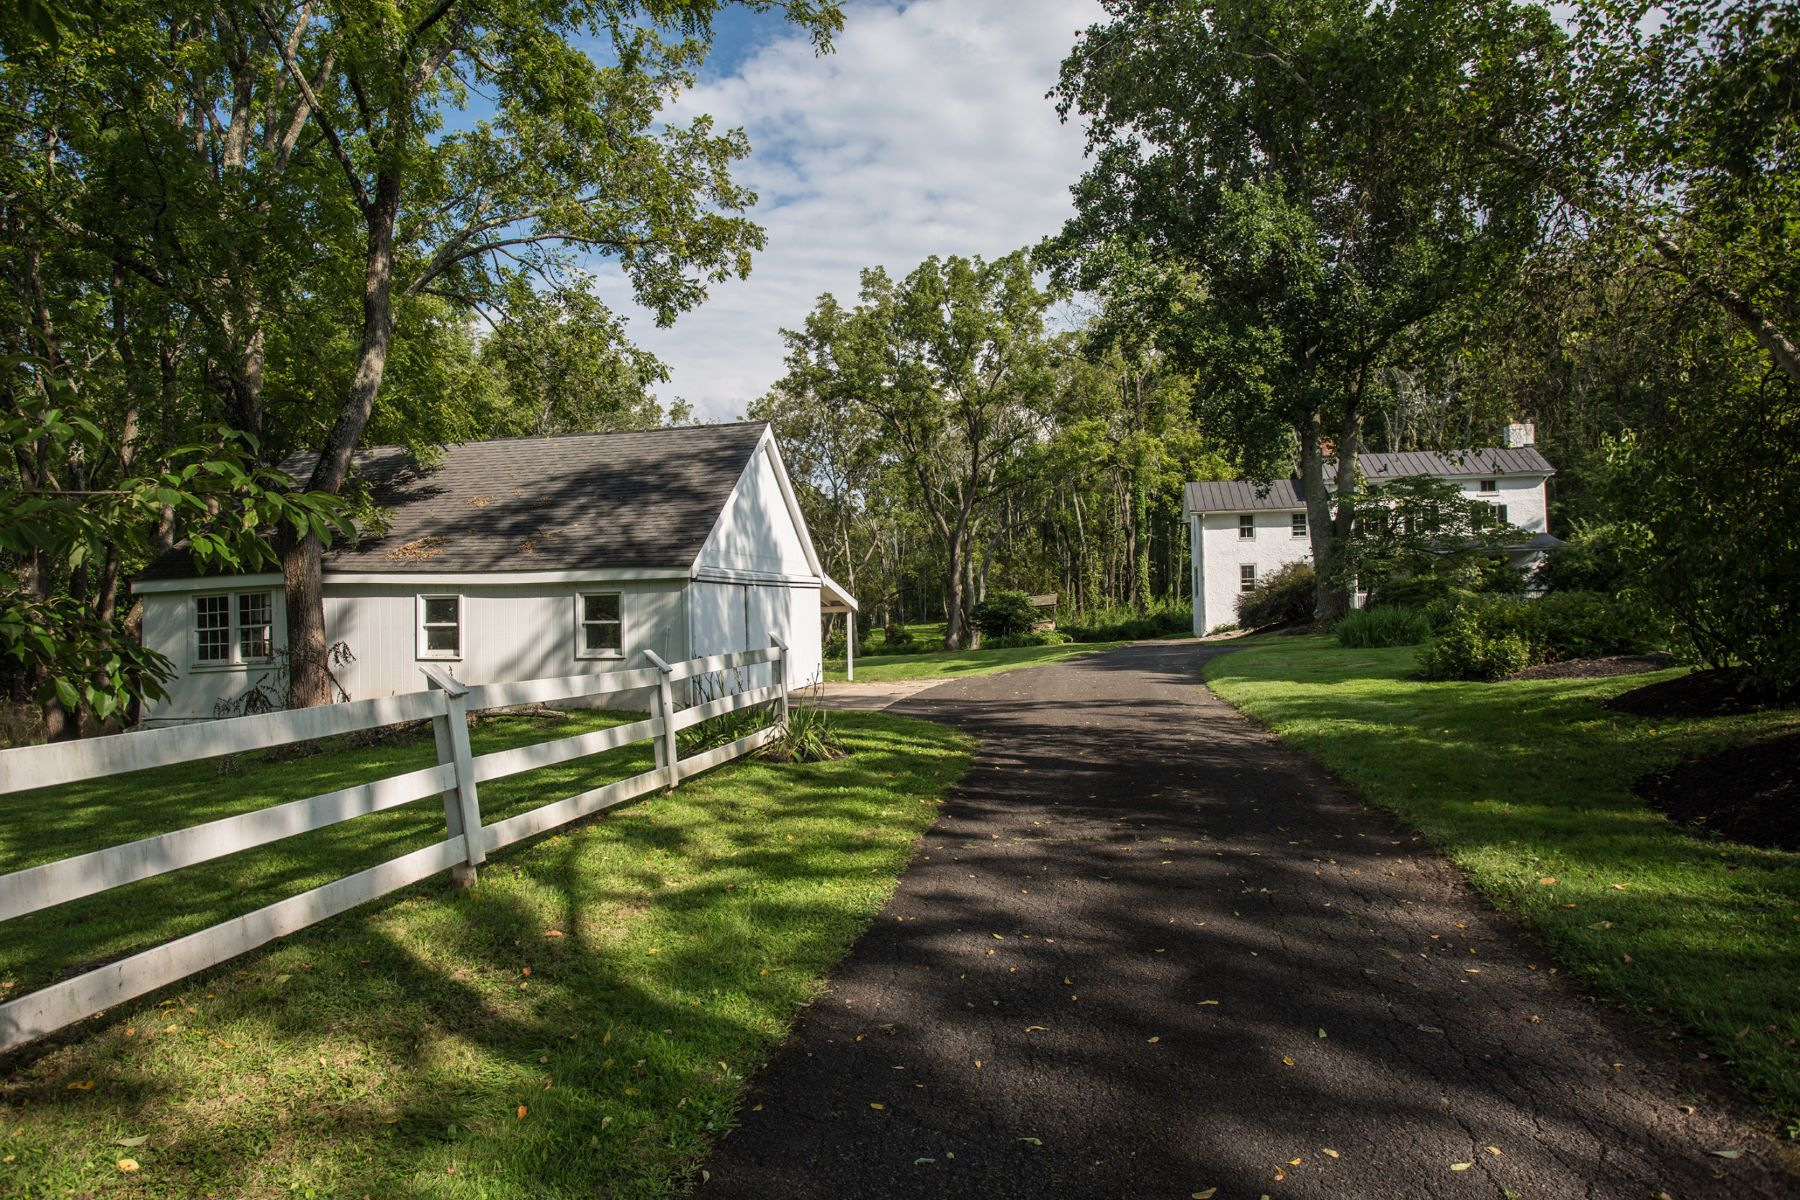 Single Family Home for Rent at Circa 1850 Farmhouse for Lease 3609 CREAMERY RD, Furlong, Pennsylvania 18925 United States